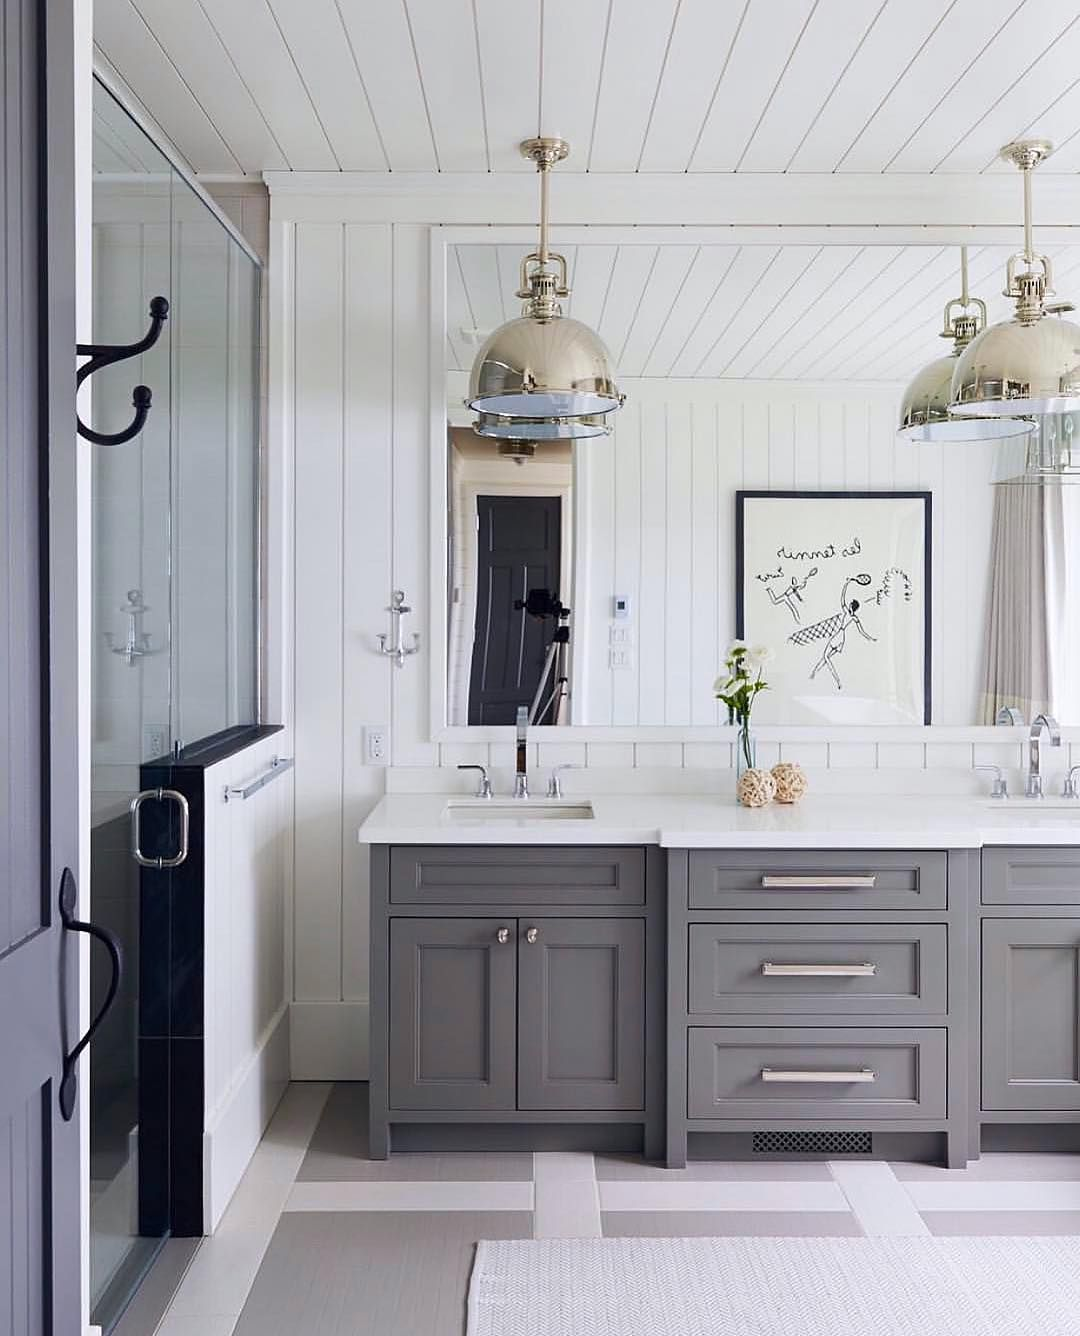 Ohtalk about bathroom goals loving the neutral colours and the